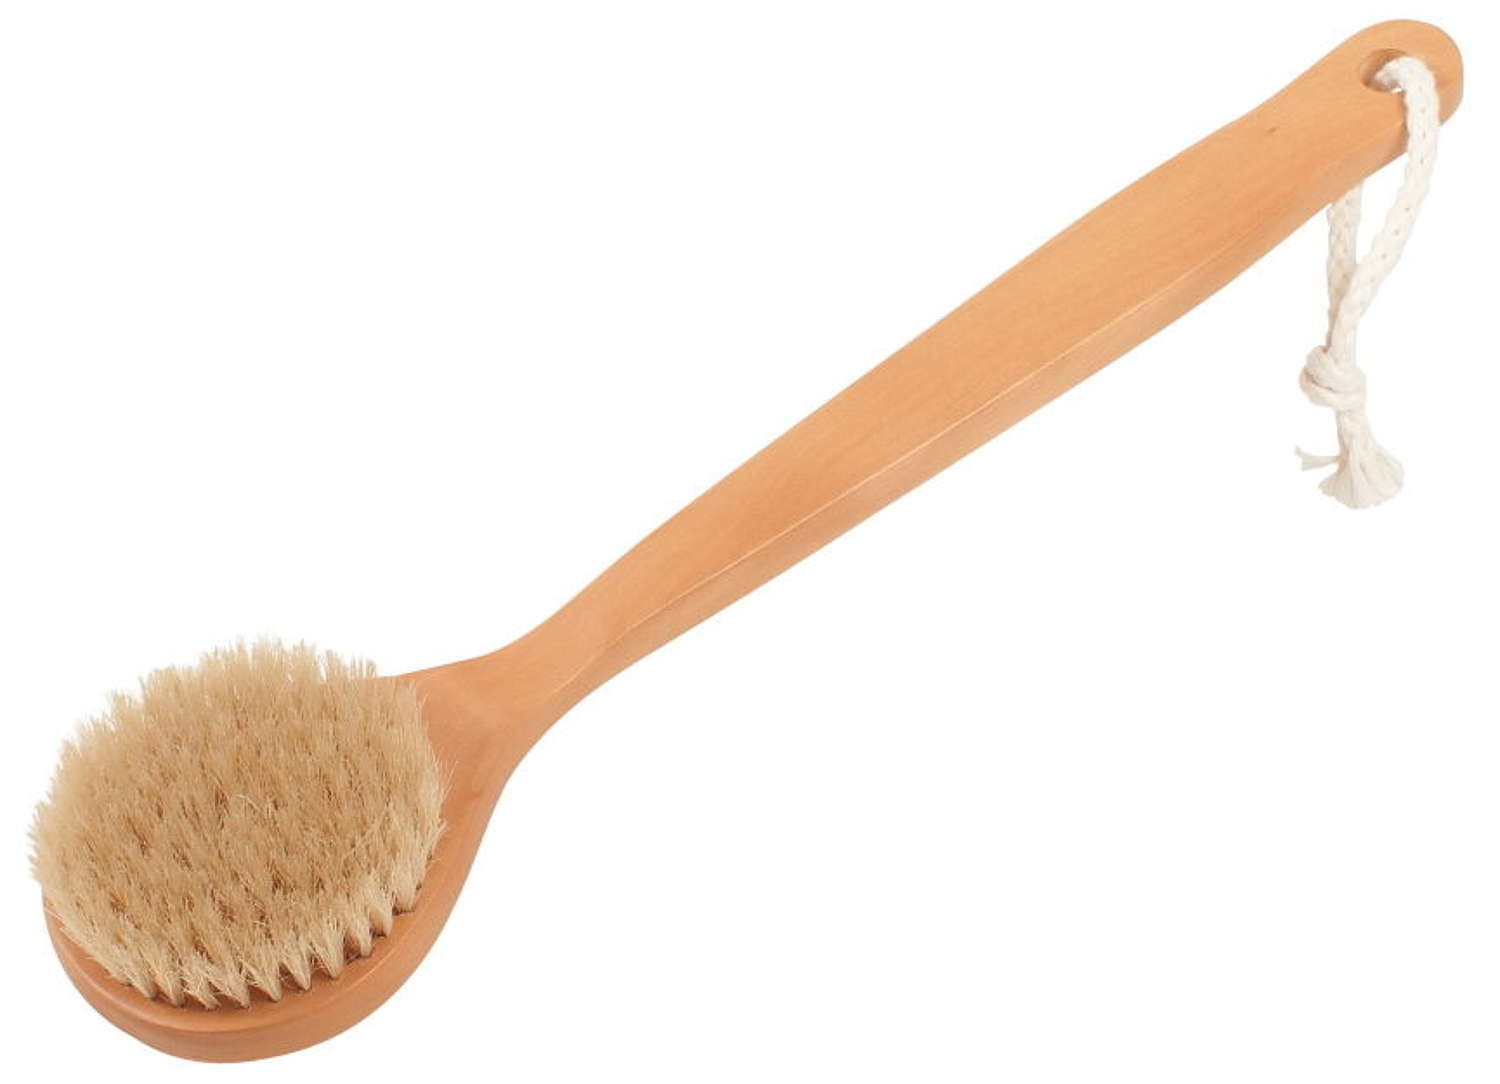 Sauna brush with natural fibre bristles